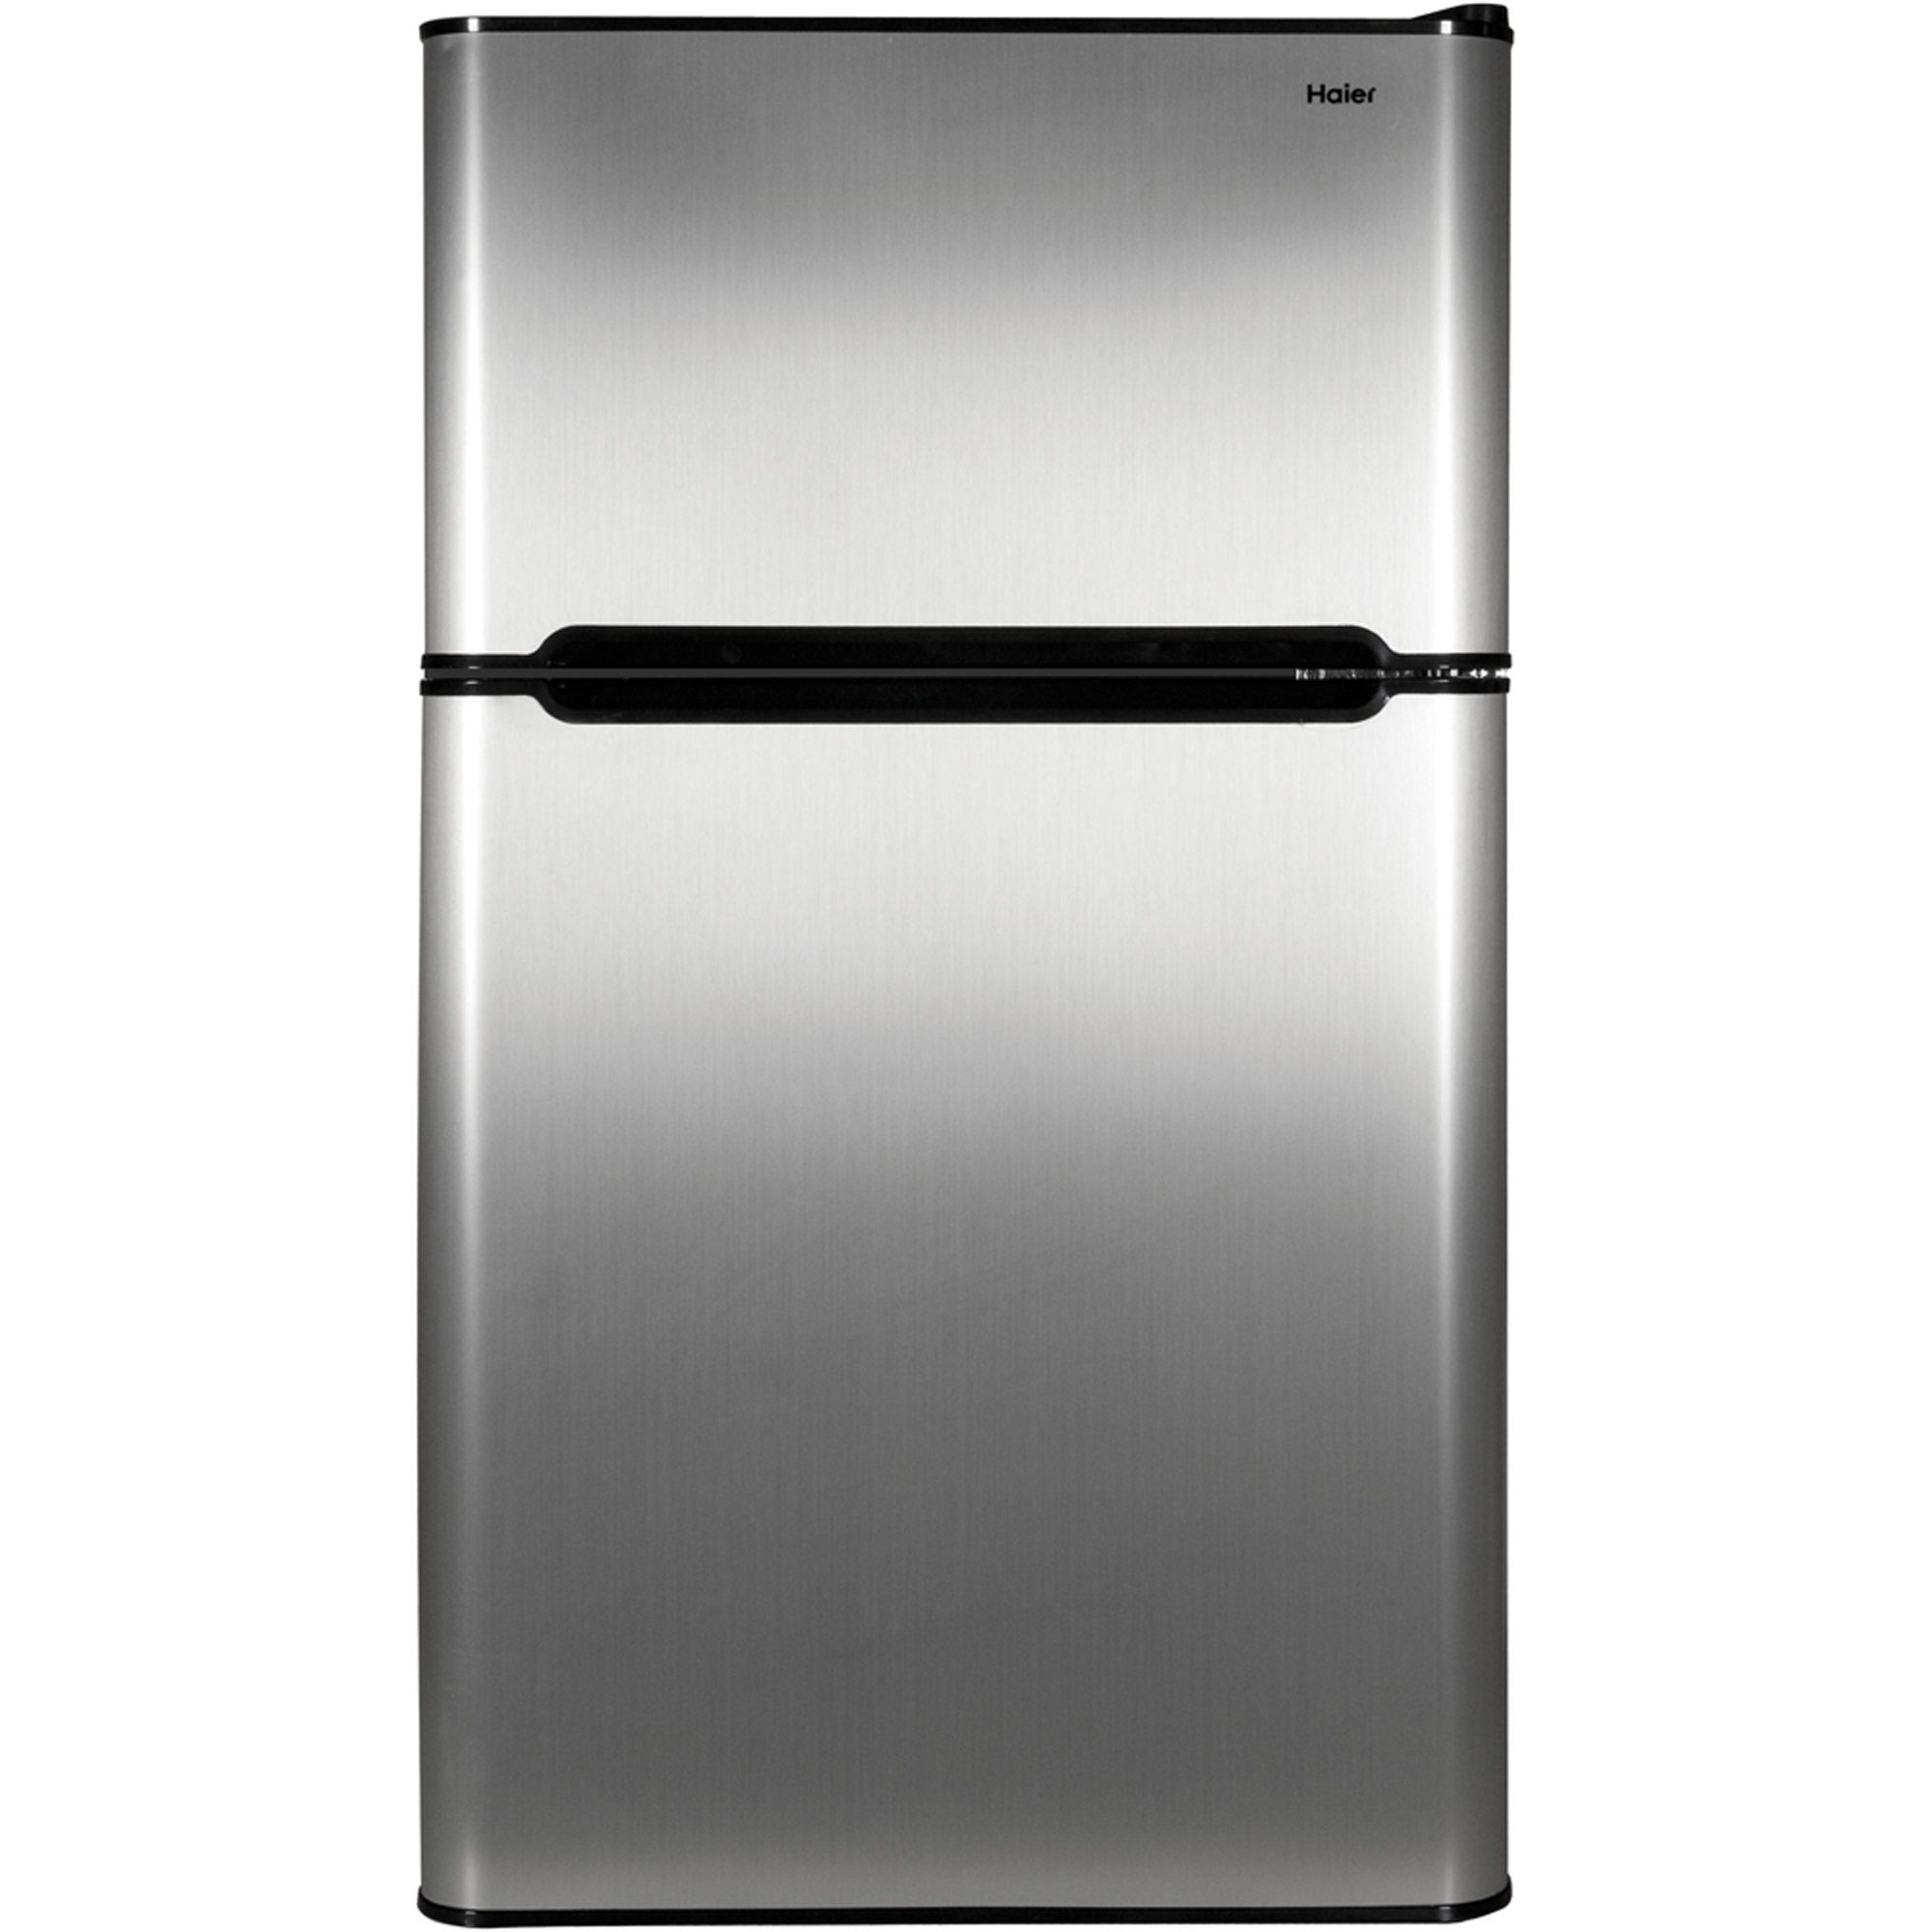 Search and Shopping more Kitchen Appliances at httpextrabigfoot